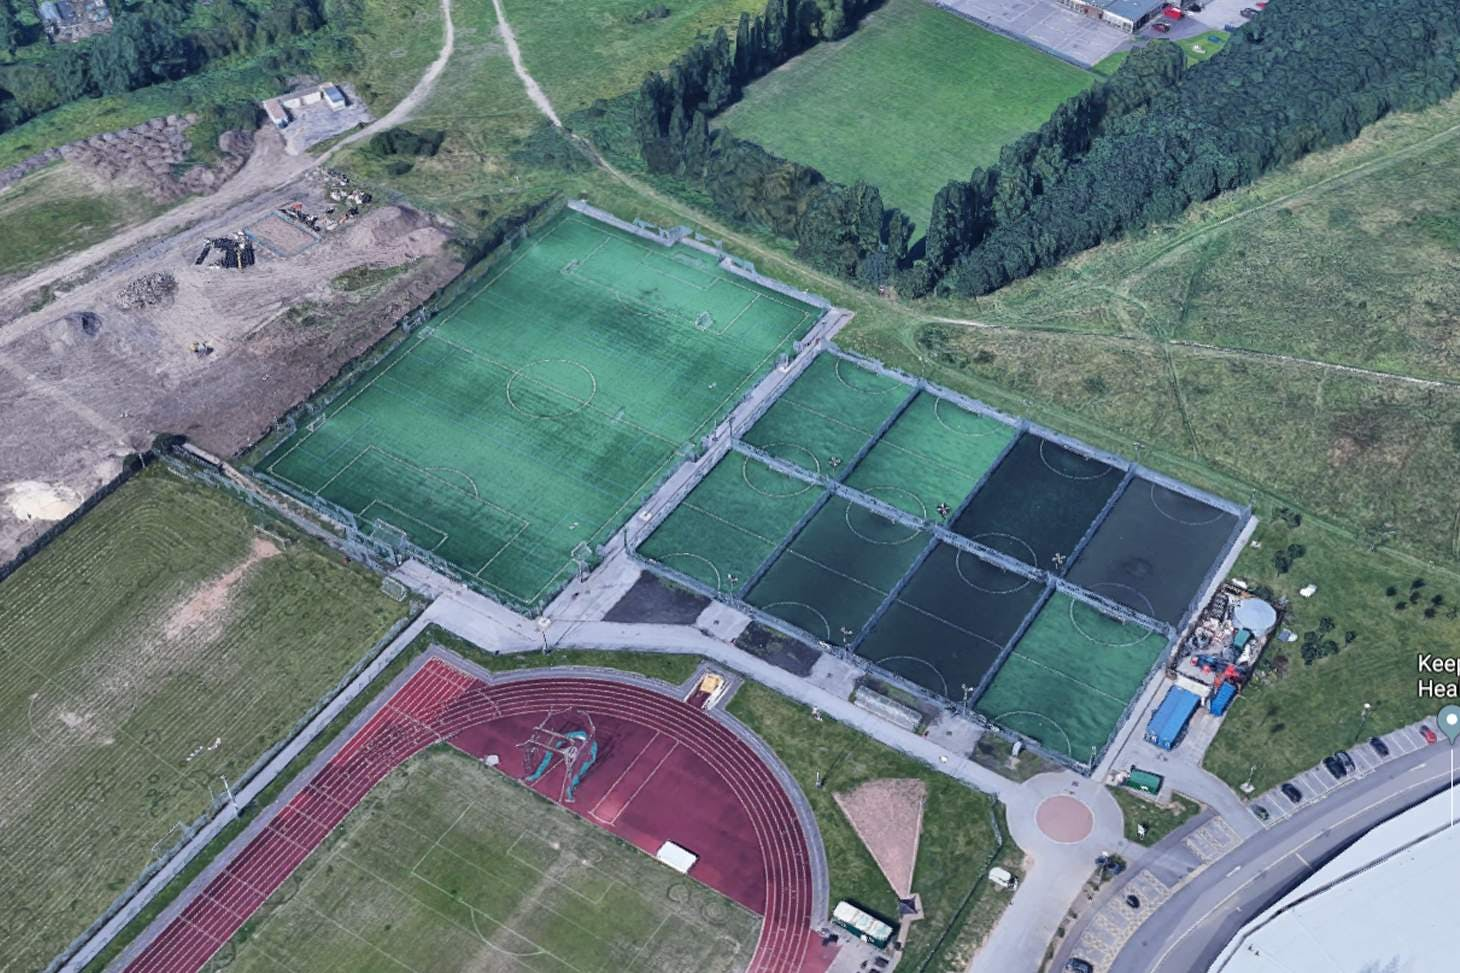 Club Doncaster Academy - Sports Centre 6 a side | Astroturf football pitch